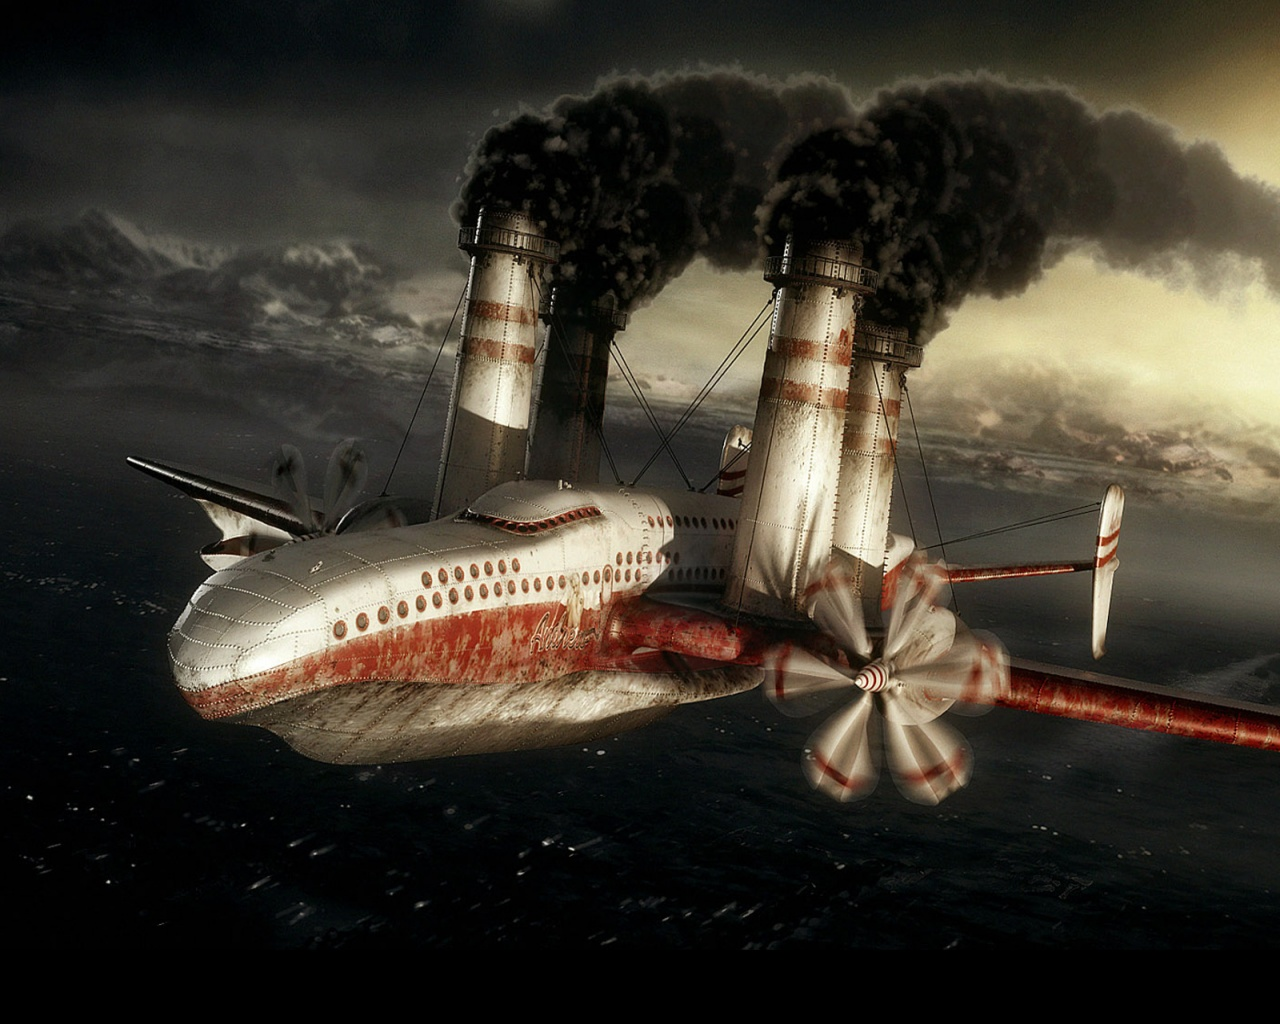 abstract wallpapers hd plane